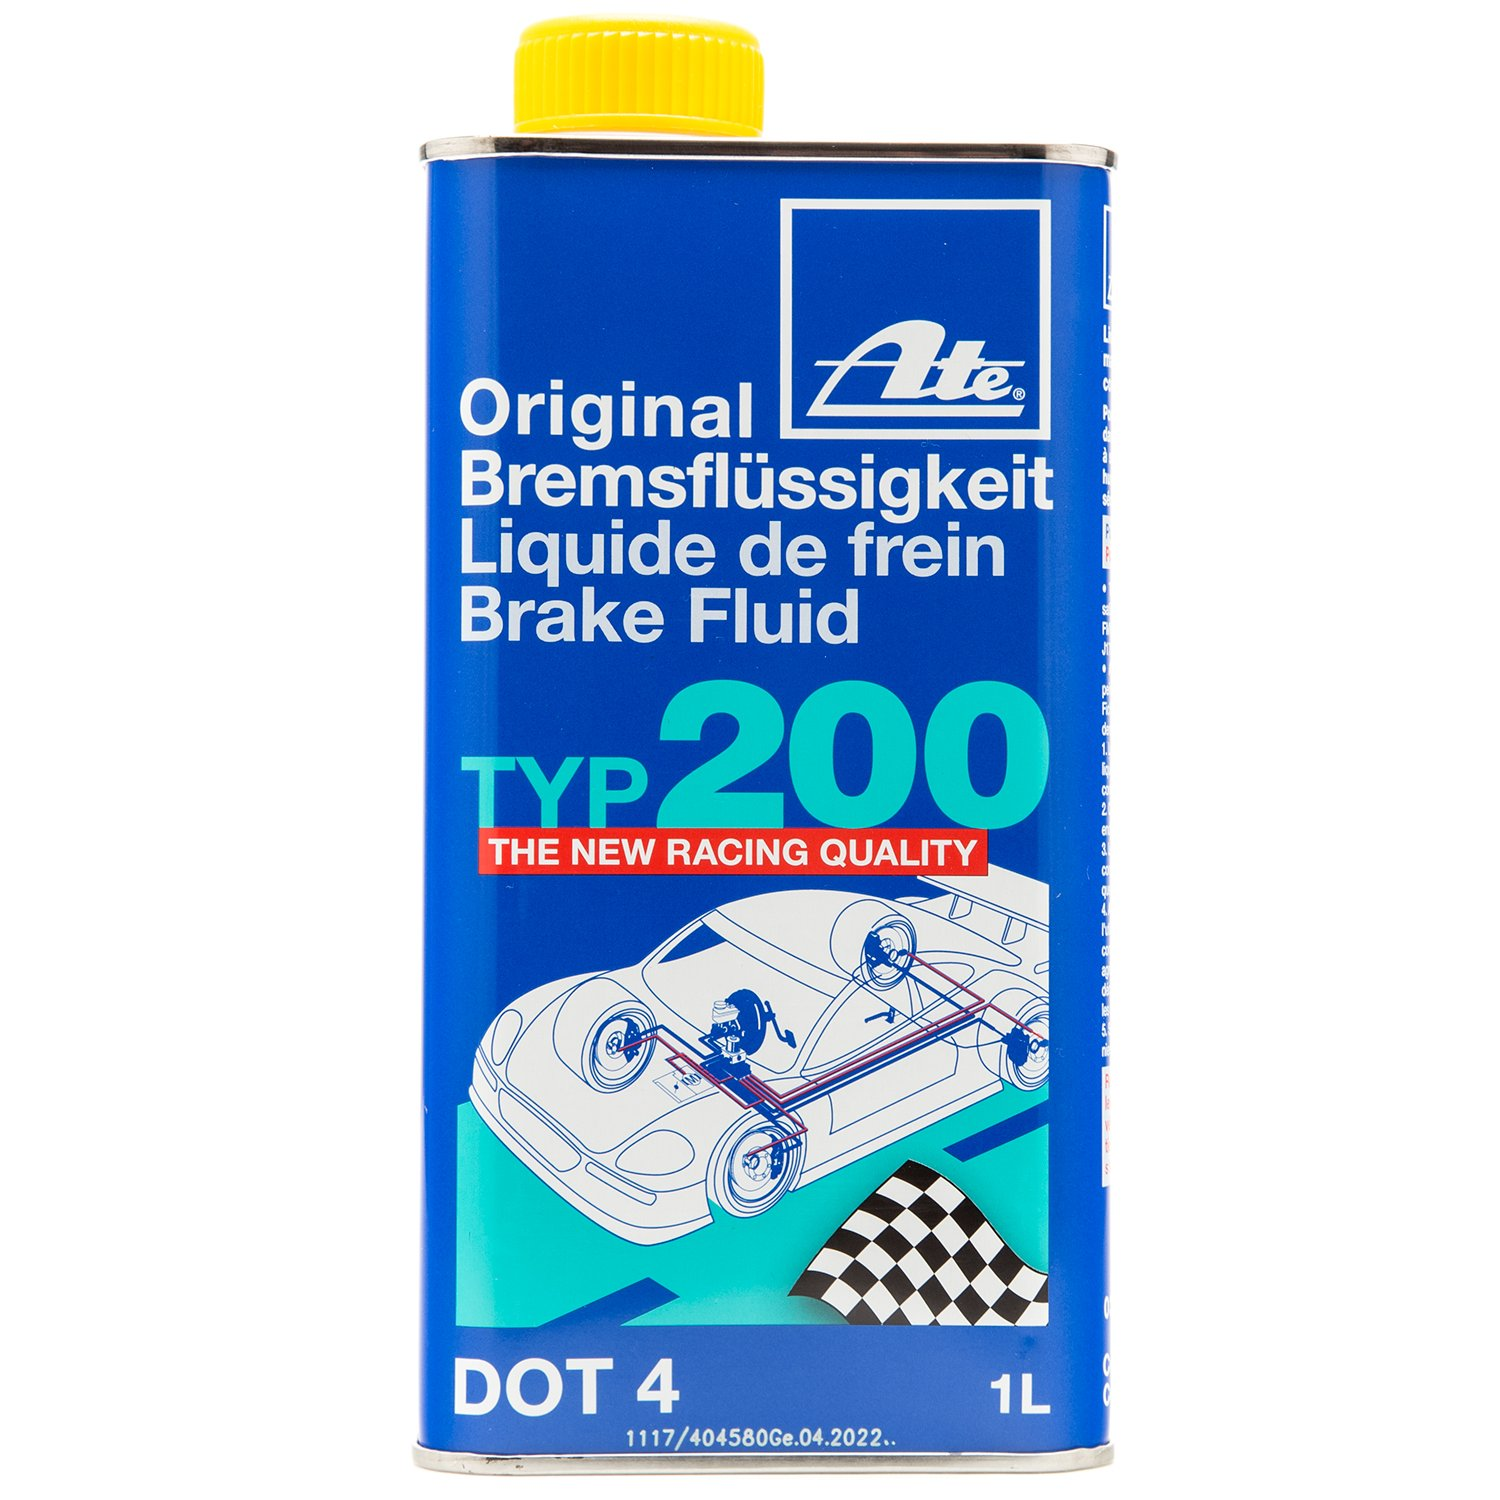 ATE 706202 Original TYP 200 DOT 4 Brake Fluid - 4 Liters by ATE